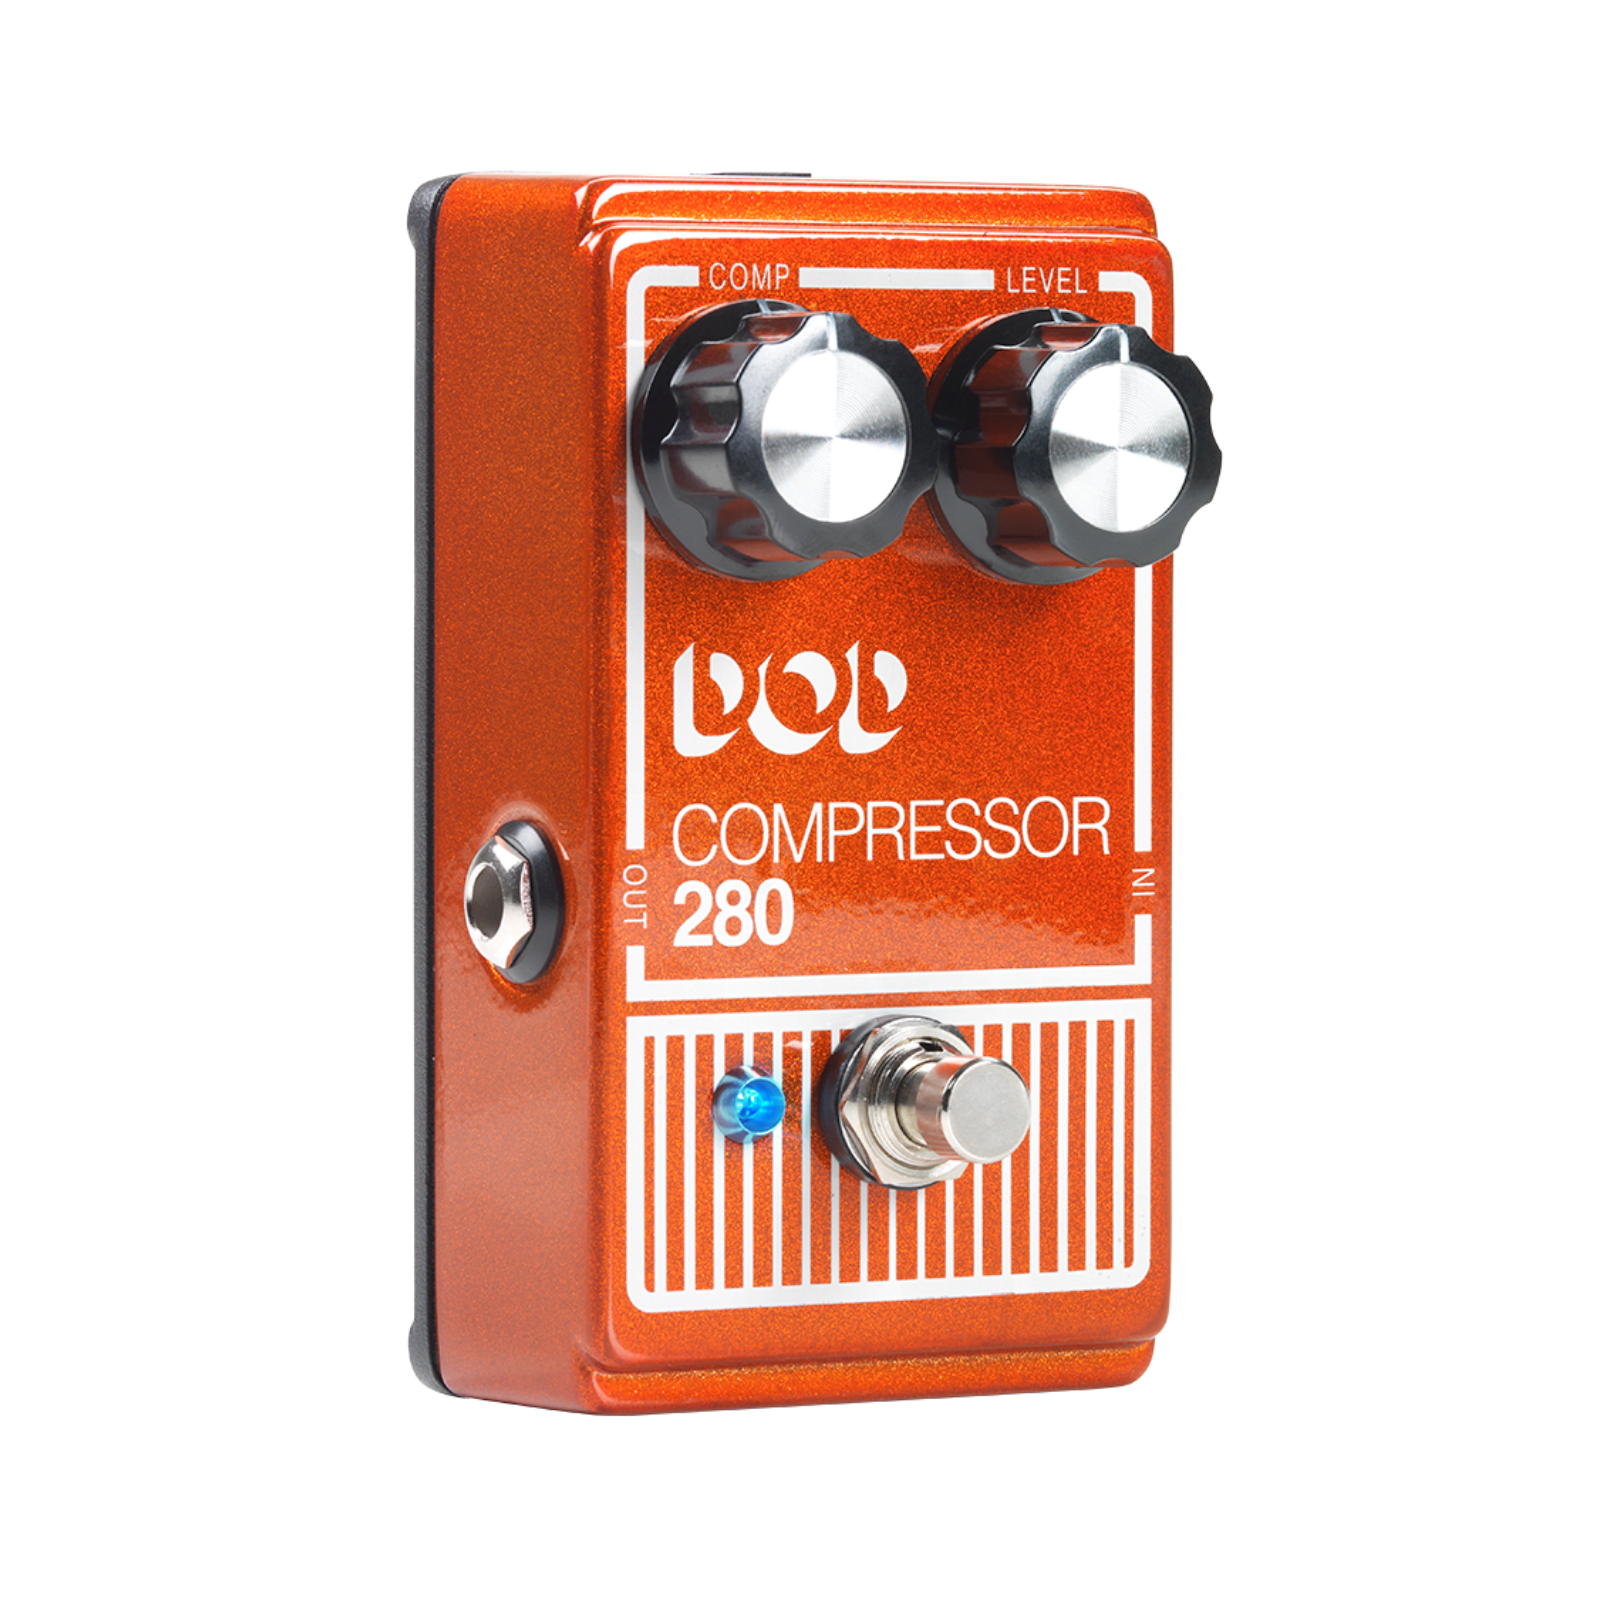 Compressor 280 - Orange - Compressor - Hero